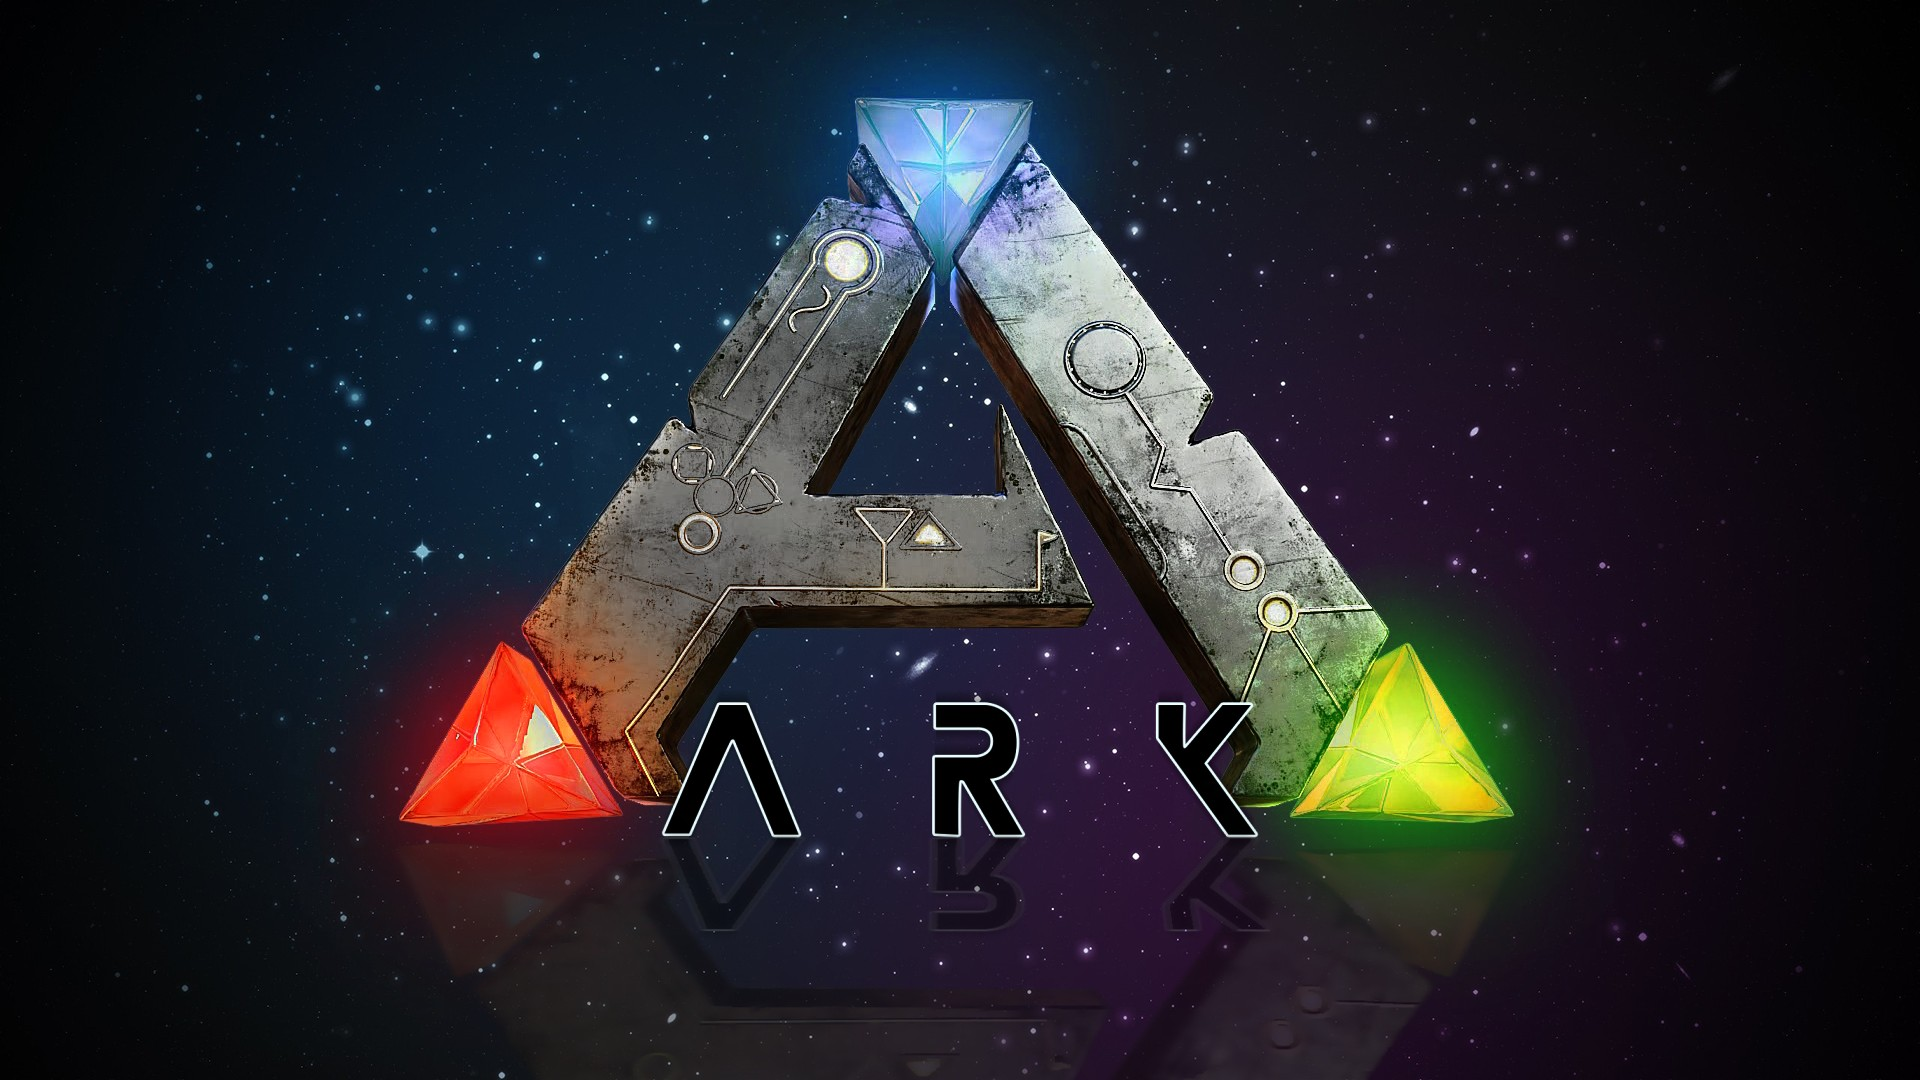 Ark Wallpaper Download Free Stunning High Resolution